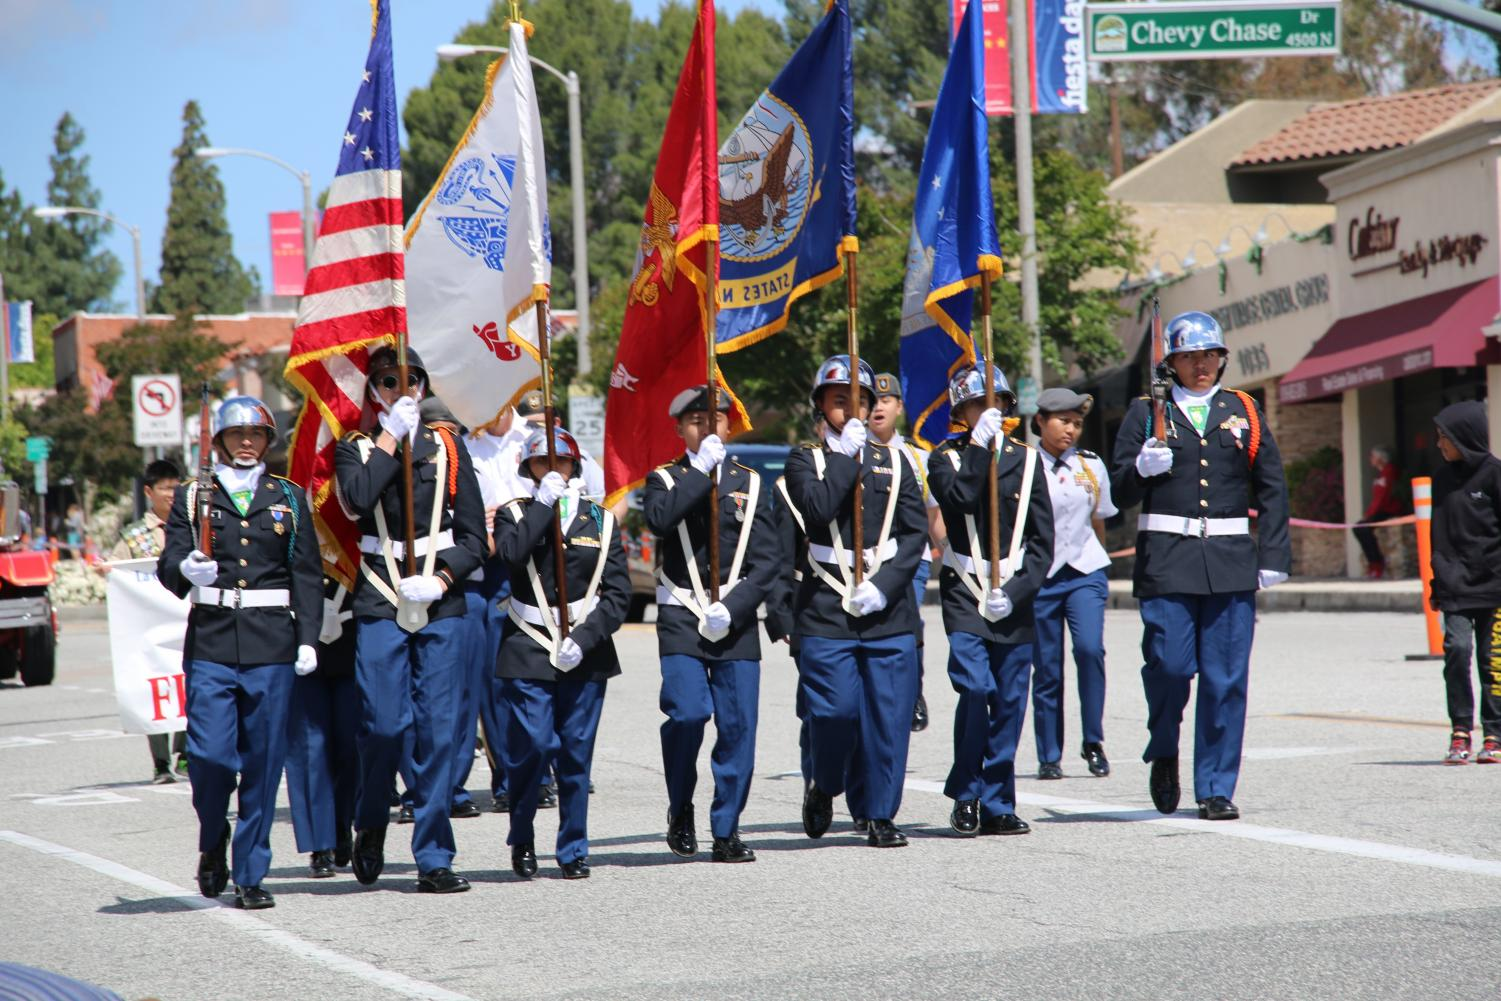 The Fiesta Days parade is hosted on Memorial day every year in La Canada.